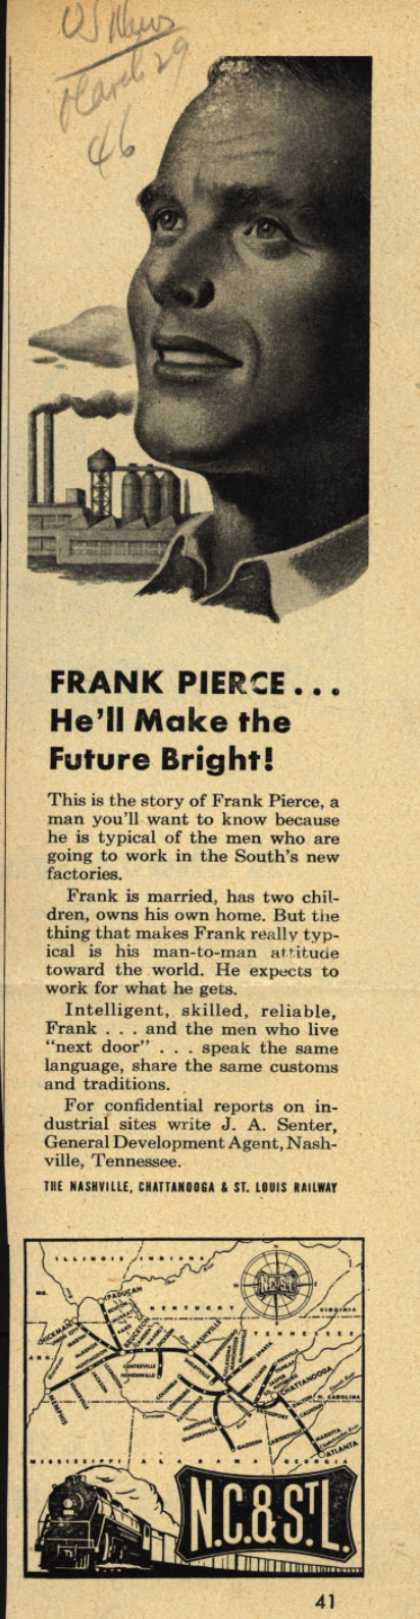 Nashville, Chattanooga & St. Louis Railway – Frank Pierce...He'll Make the Future Bright (1946)